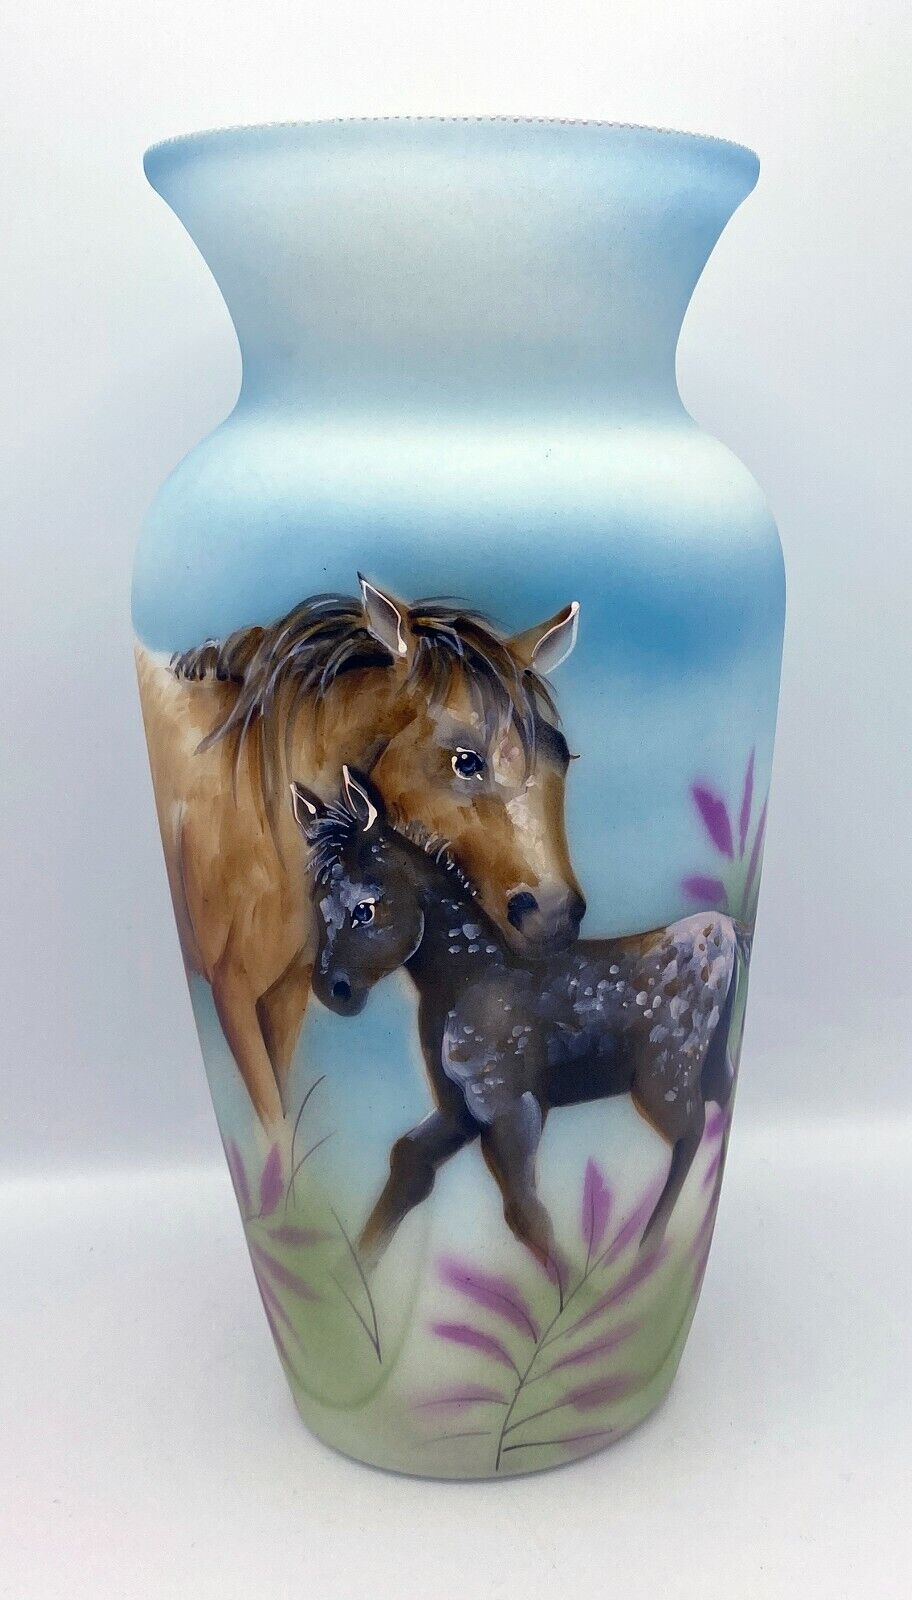 Fenton Art Glass OOAK Painted Horse And Foal On Opal Vase By Robin Spindler - $428.58